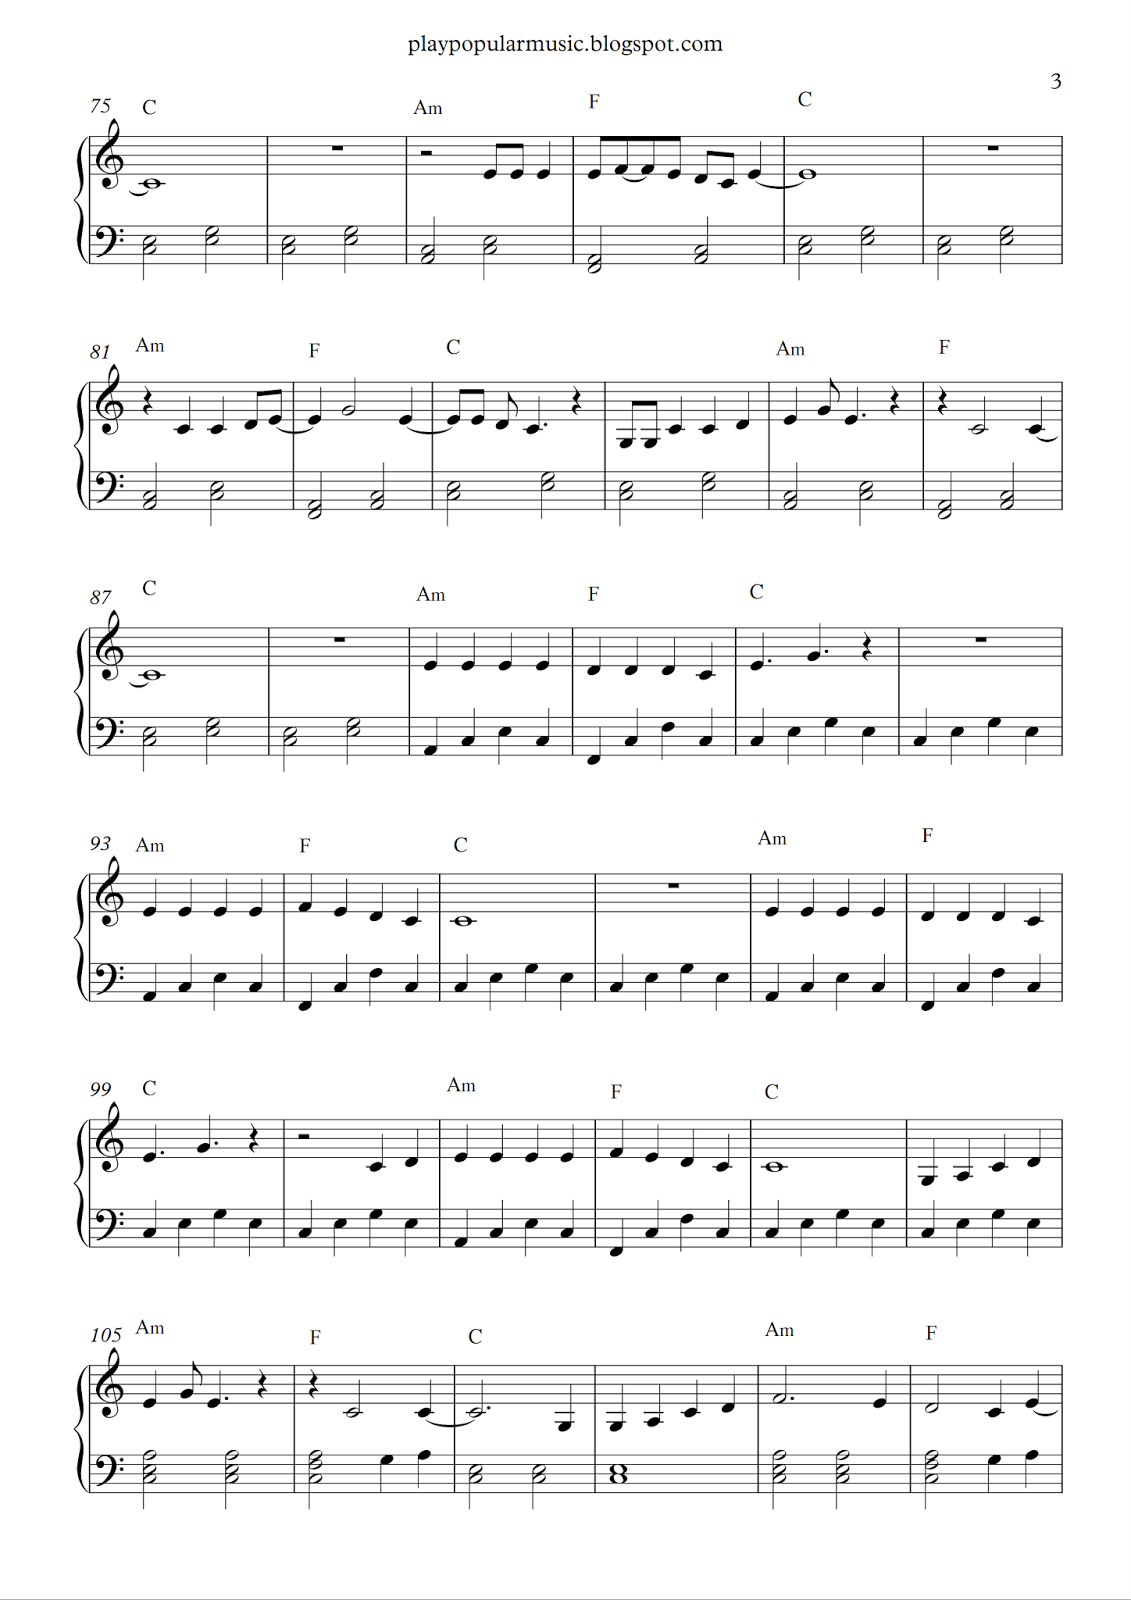 Free Piano Sheet Music Ed Sheeran Happier Pdf I Could Try To Smile To Hide The Truth B Happier Ed Sheeran Classical Sheet Music Piano Sheet Music Free